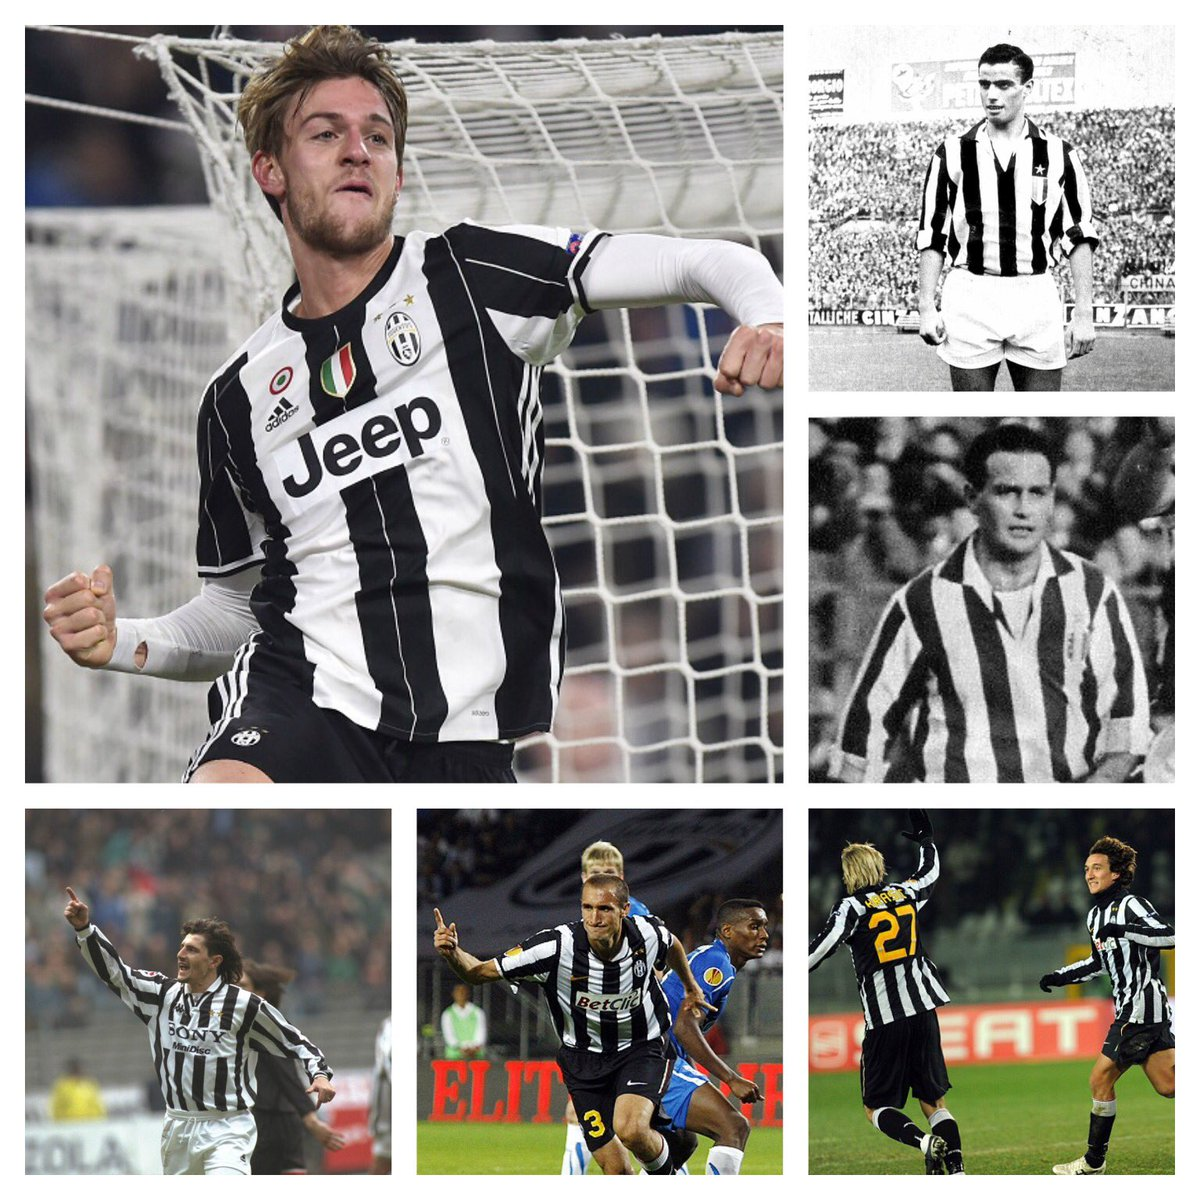 Firsts &amp; Lasts  #Juve&#39;s first &amp; lastscorers in the group stages of all continental competitions   https://www. facebook.com/juvestats1897/ posts/1985336765018843 &nbsp; …   #JuveOlympiacos<br>http://pic.twitter.com/p9l67dI6Zf